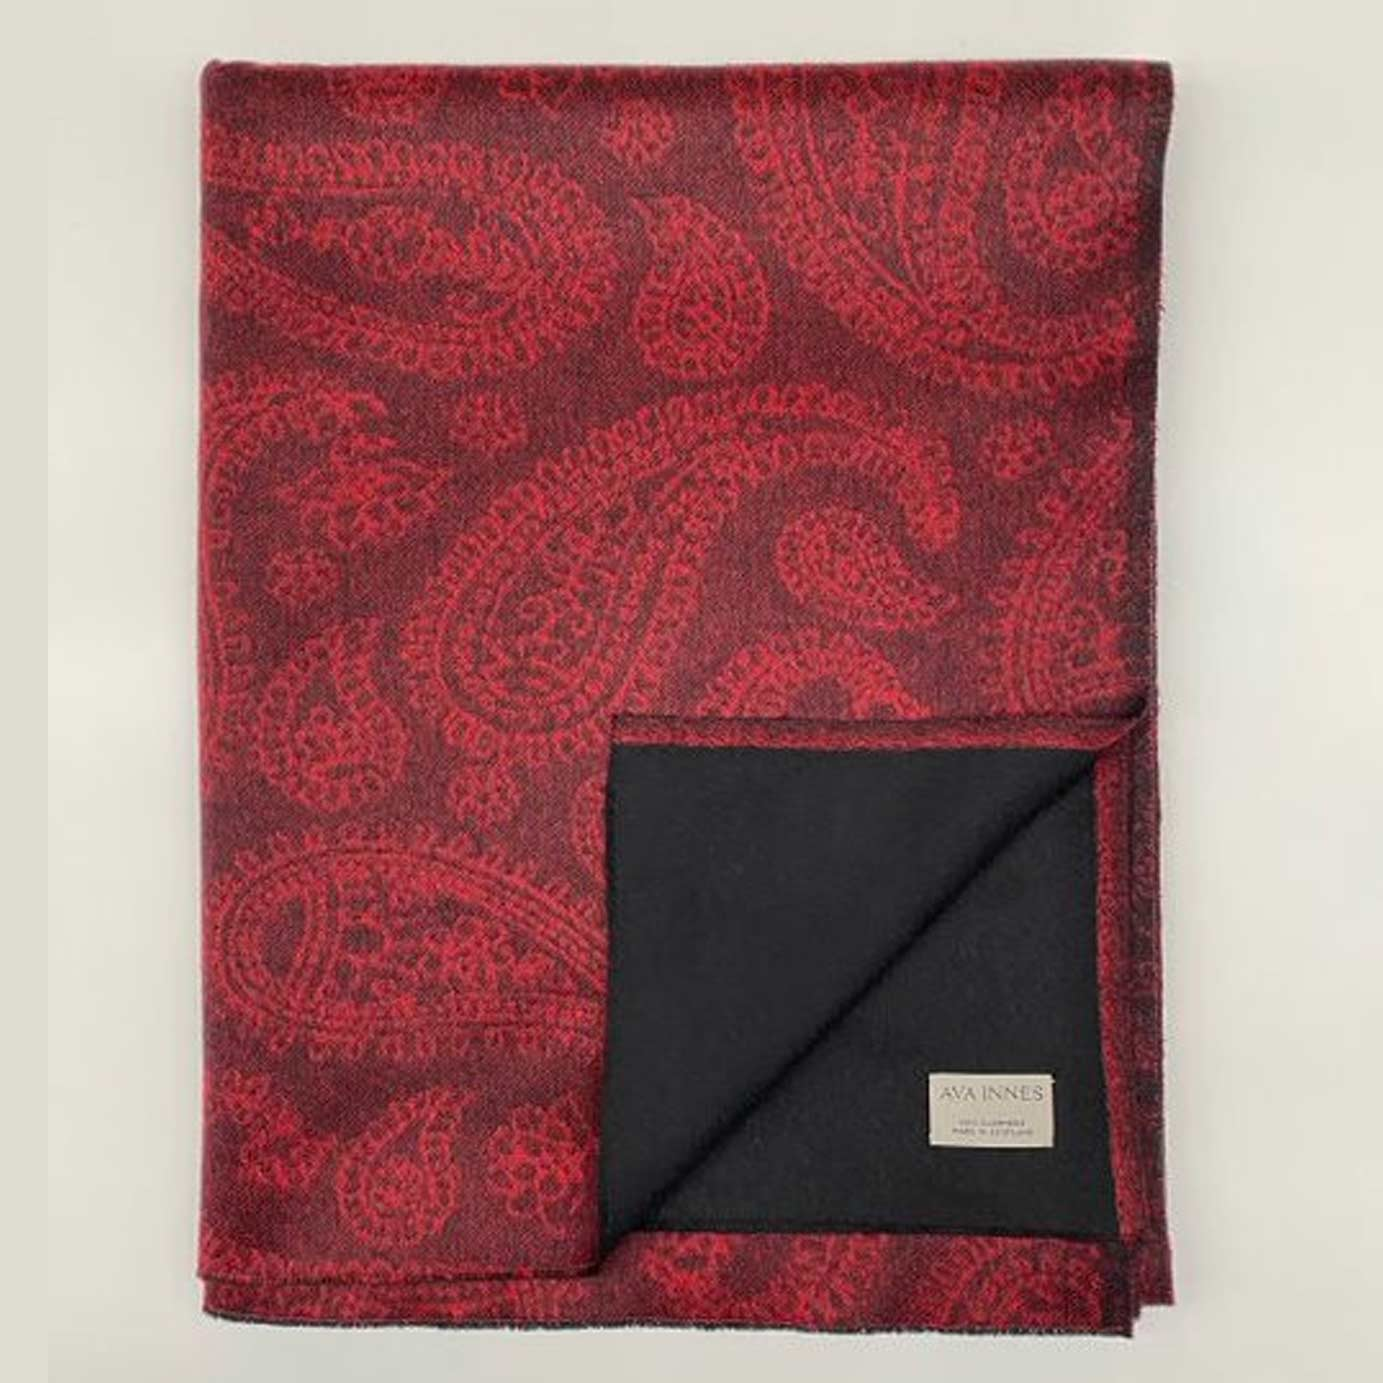 Luxury Red Paisley Cashmere Blanket